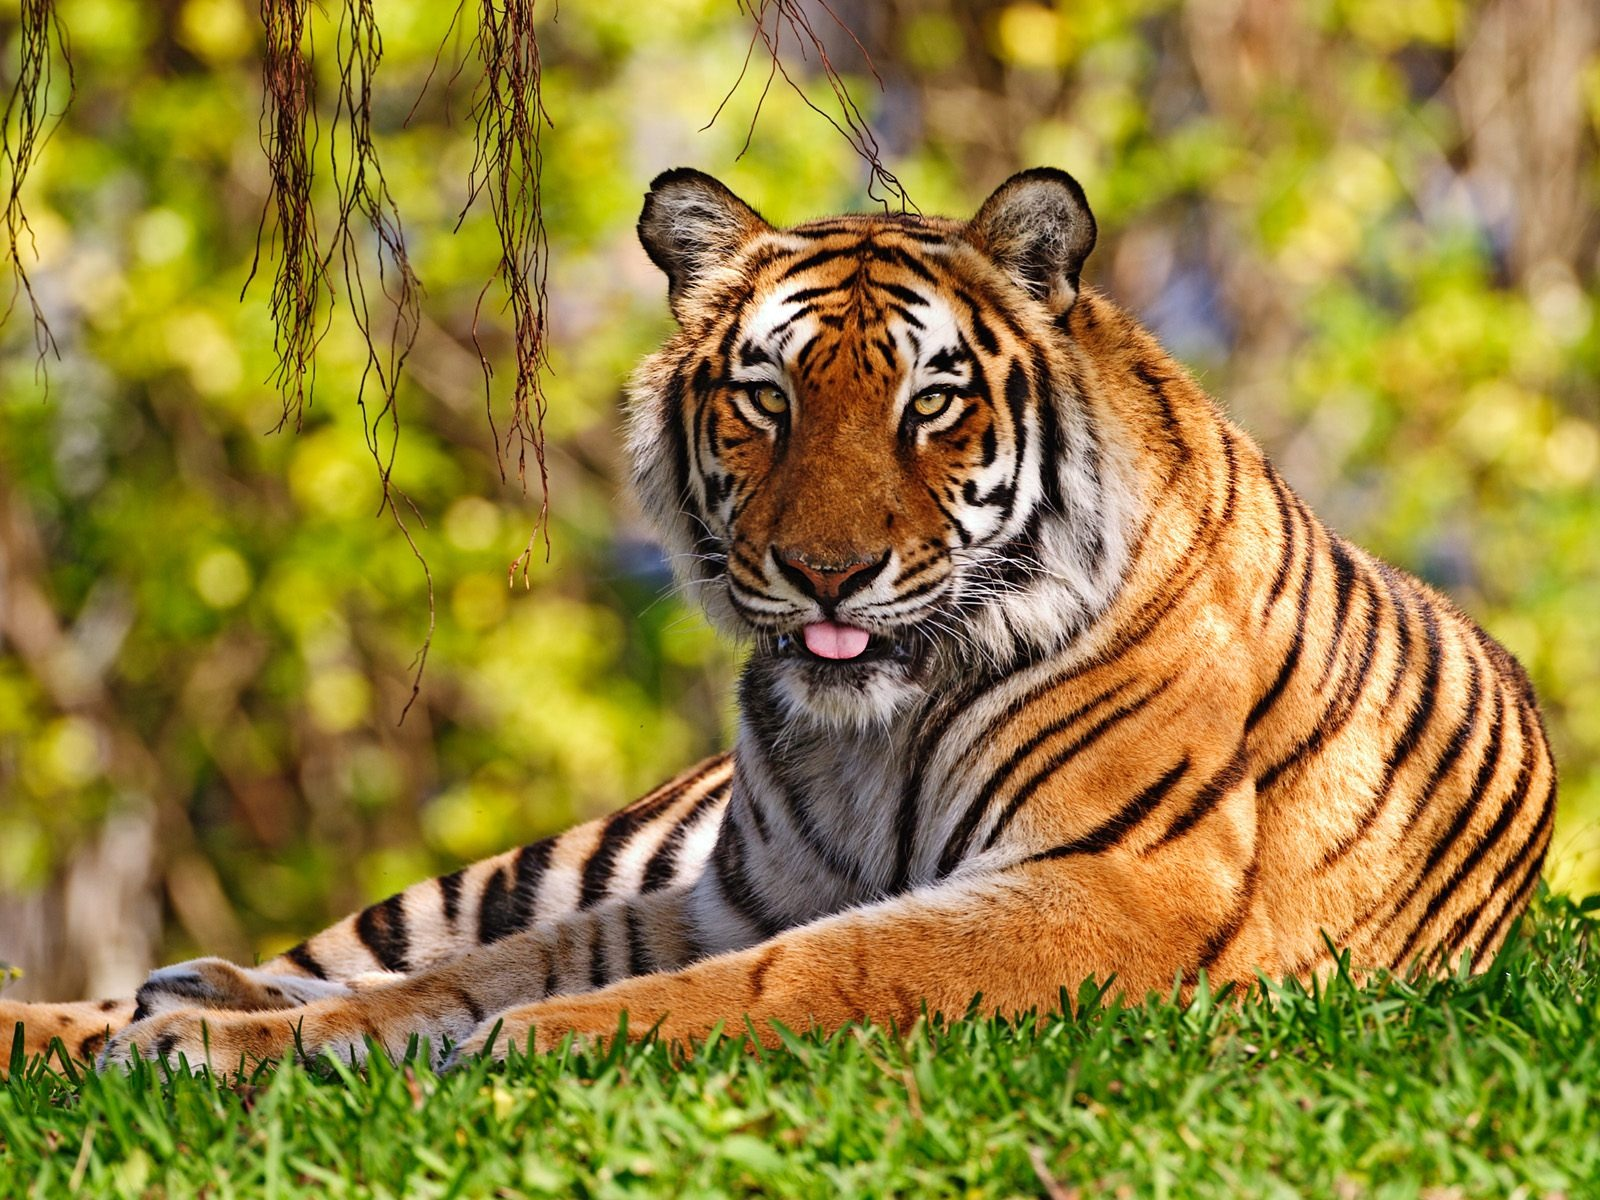 Tiger Tongue Wallpaper Tigers Animals Wallpapers